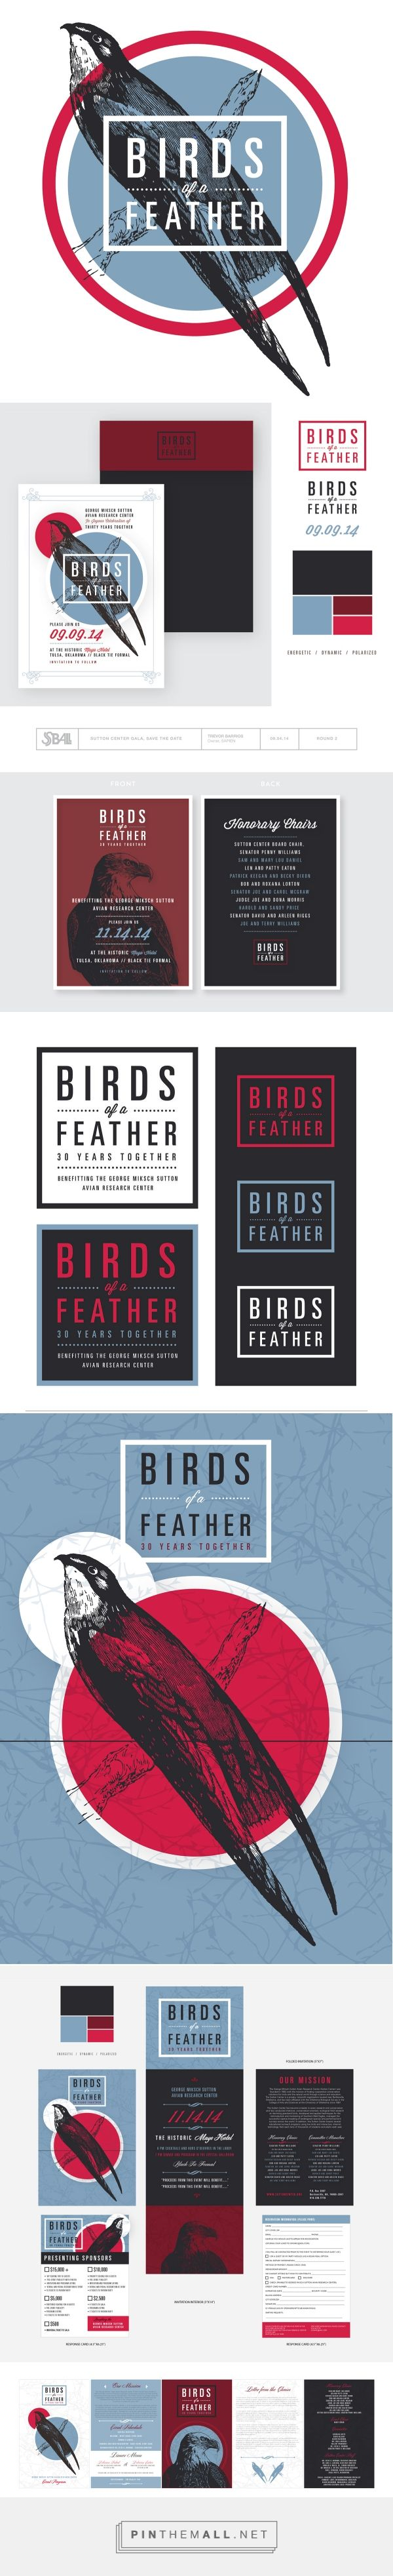 Birds of a Feather Gala by Sean Ball | Graphic Design